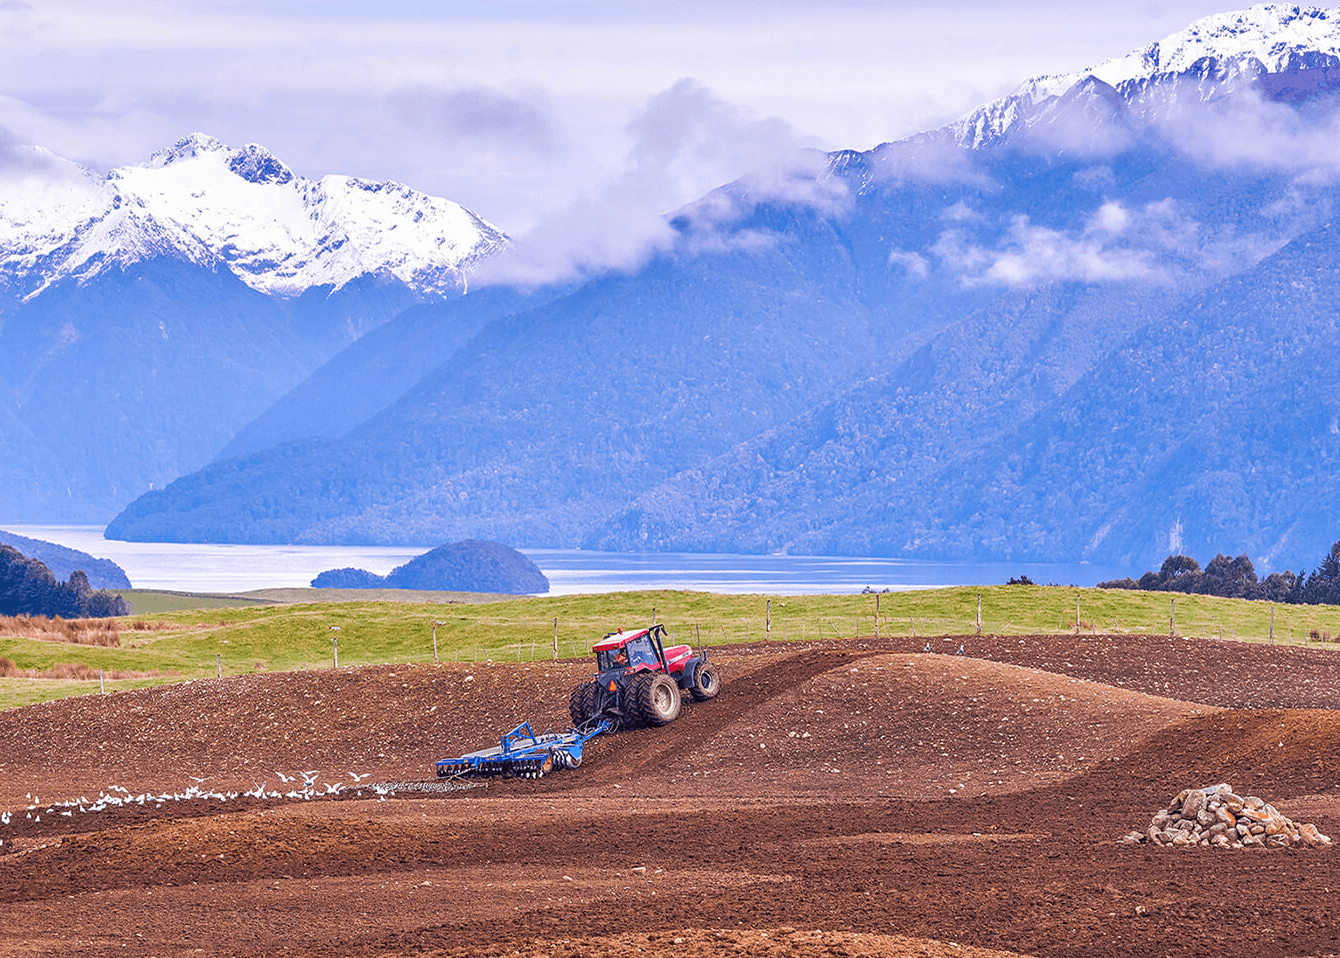 Red tractor in a paddock pulling blue Grizzly discs across the soil